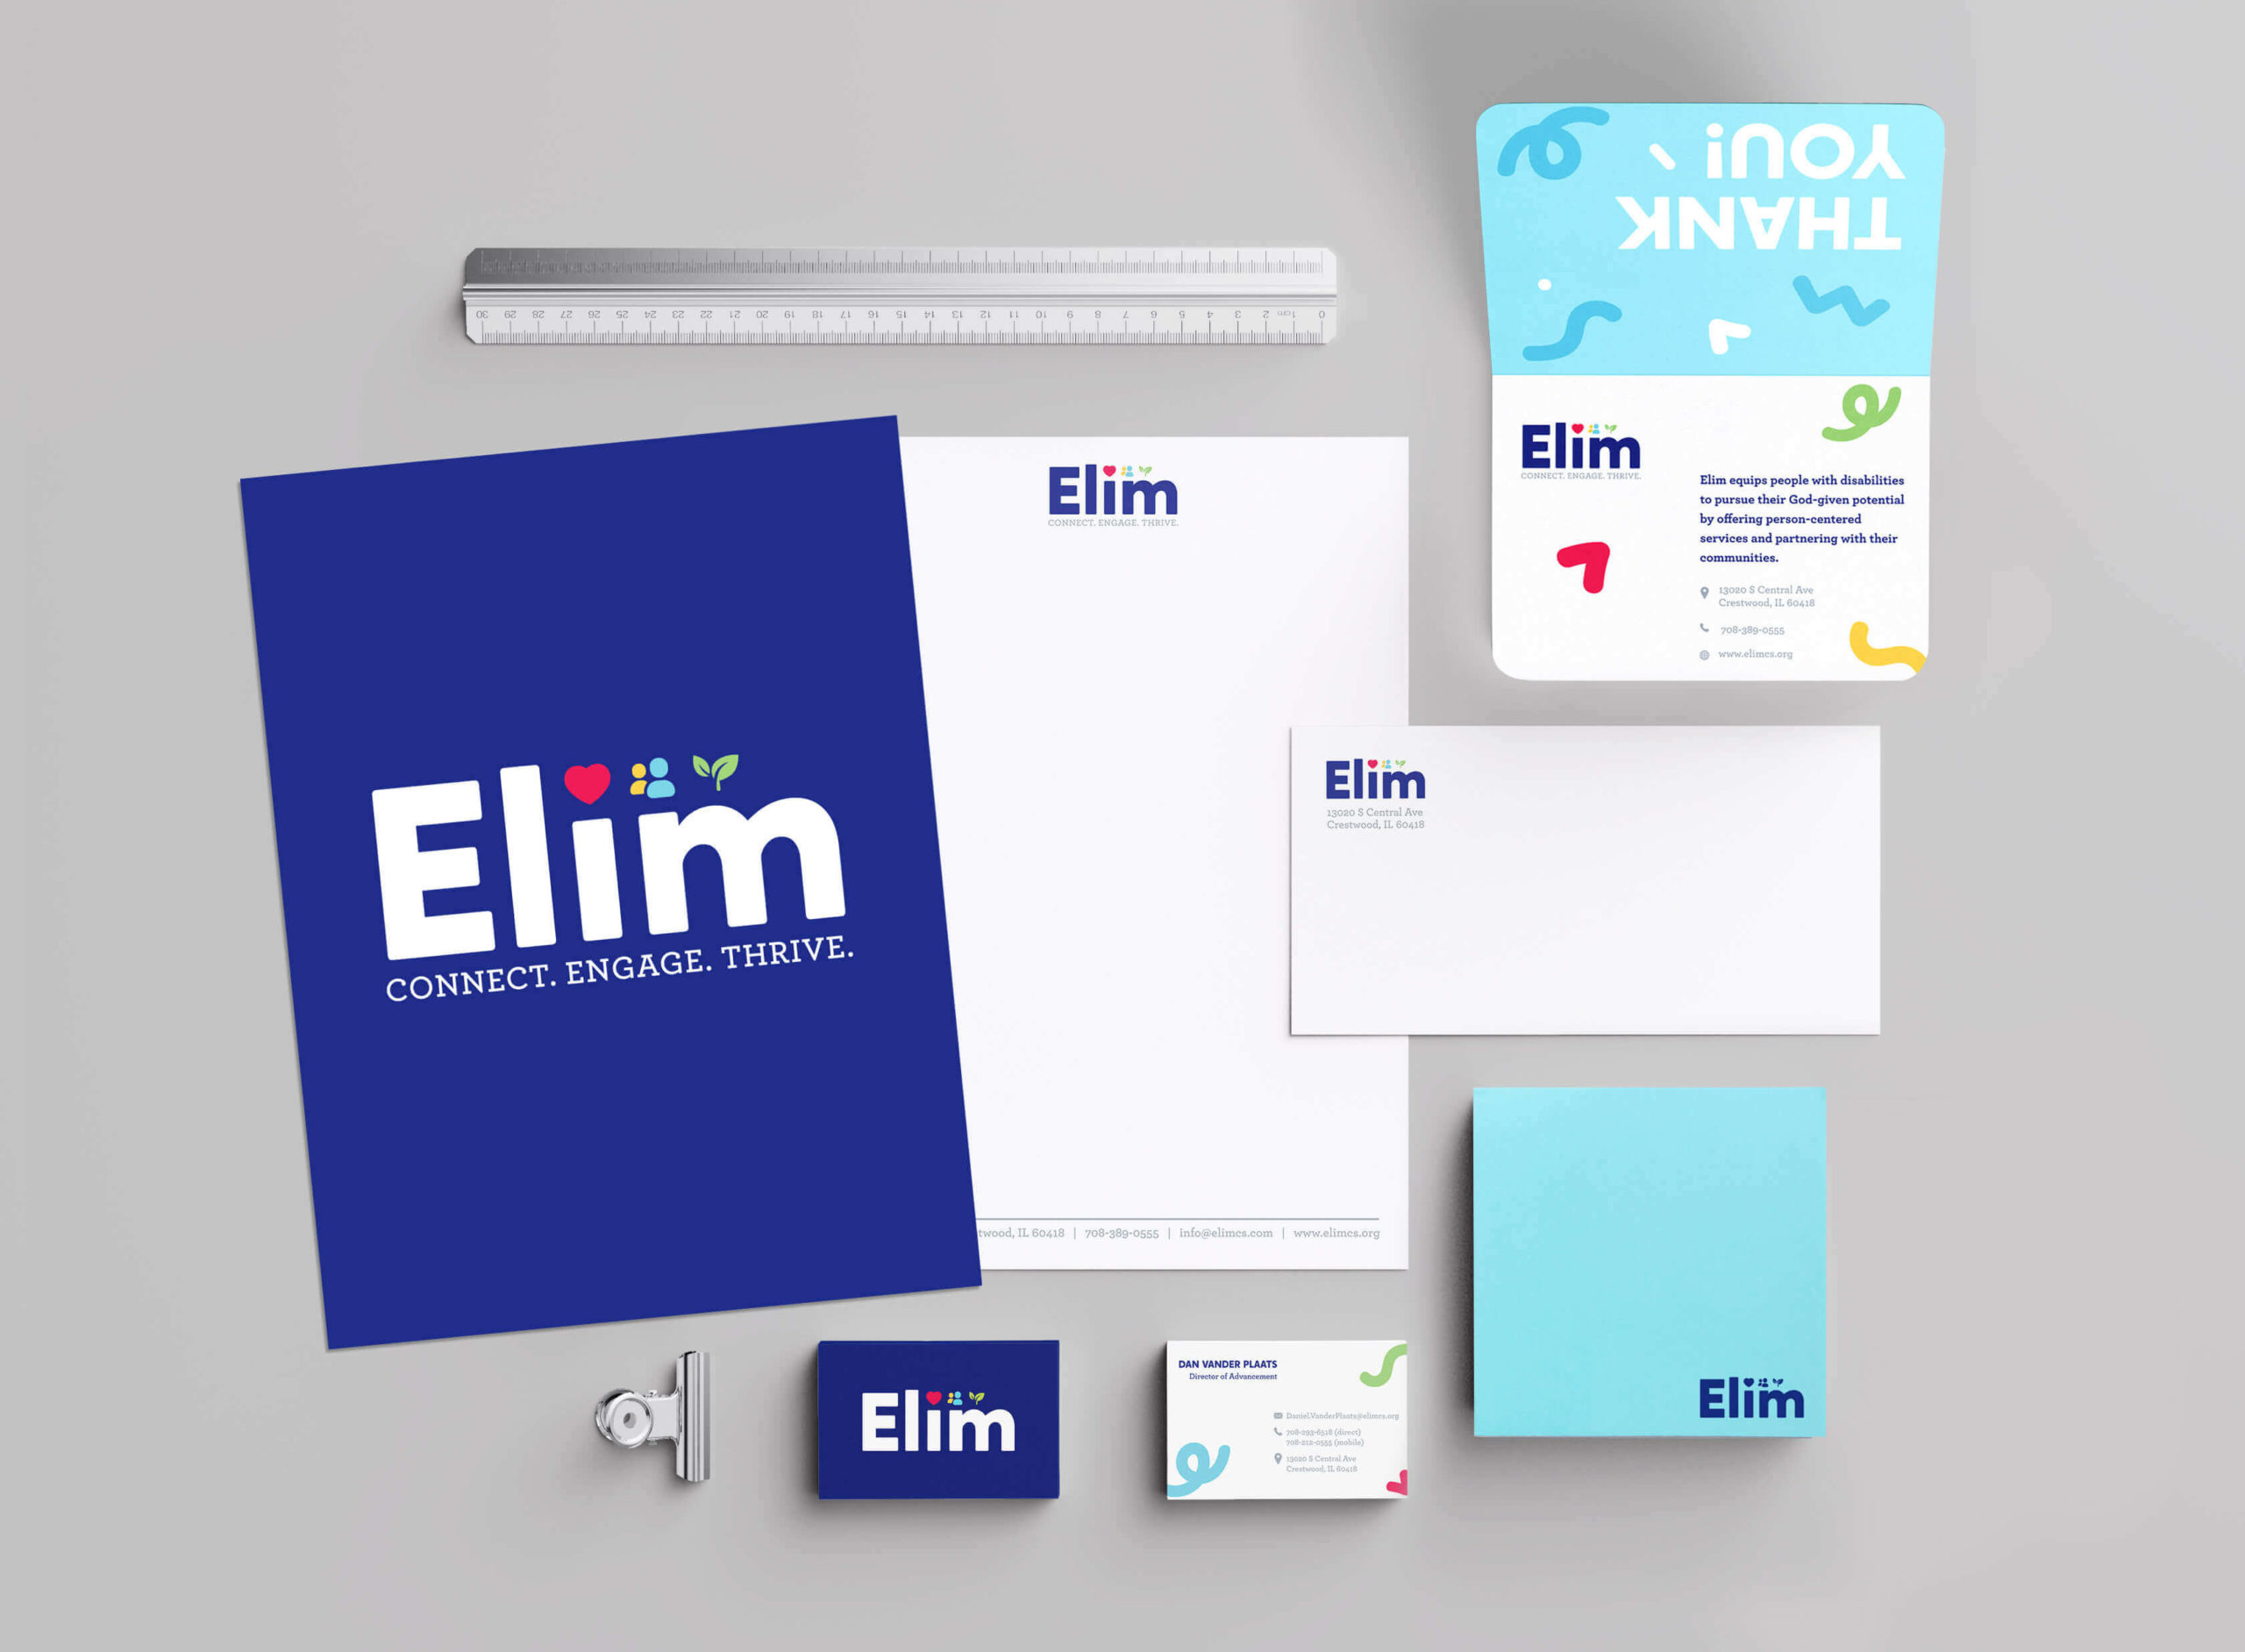 Elim - Brand Development - Christian Services Organization for People with Disabilities